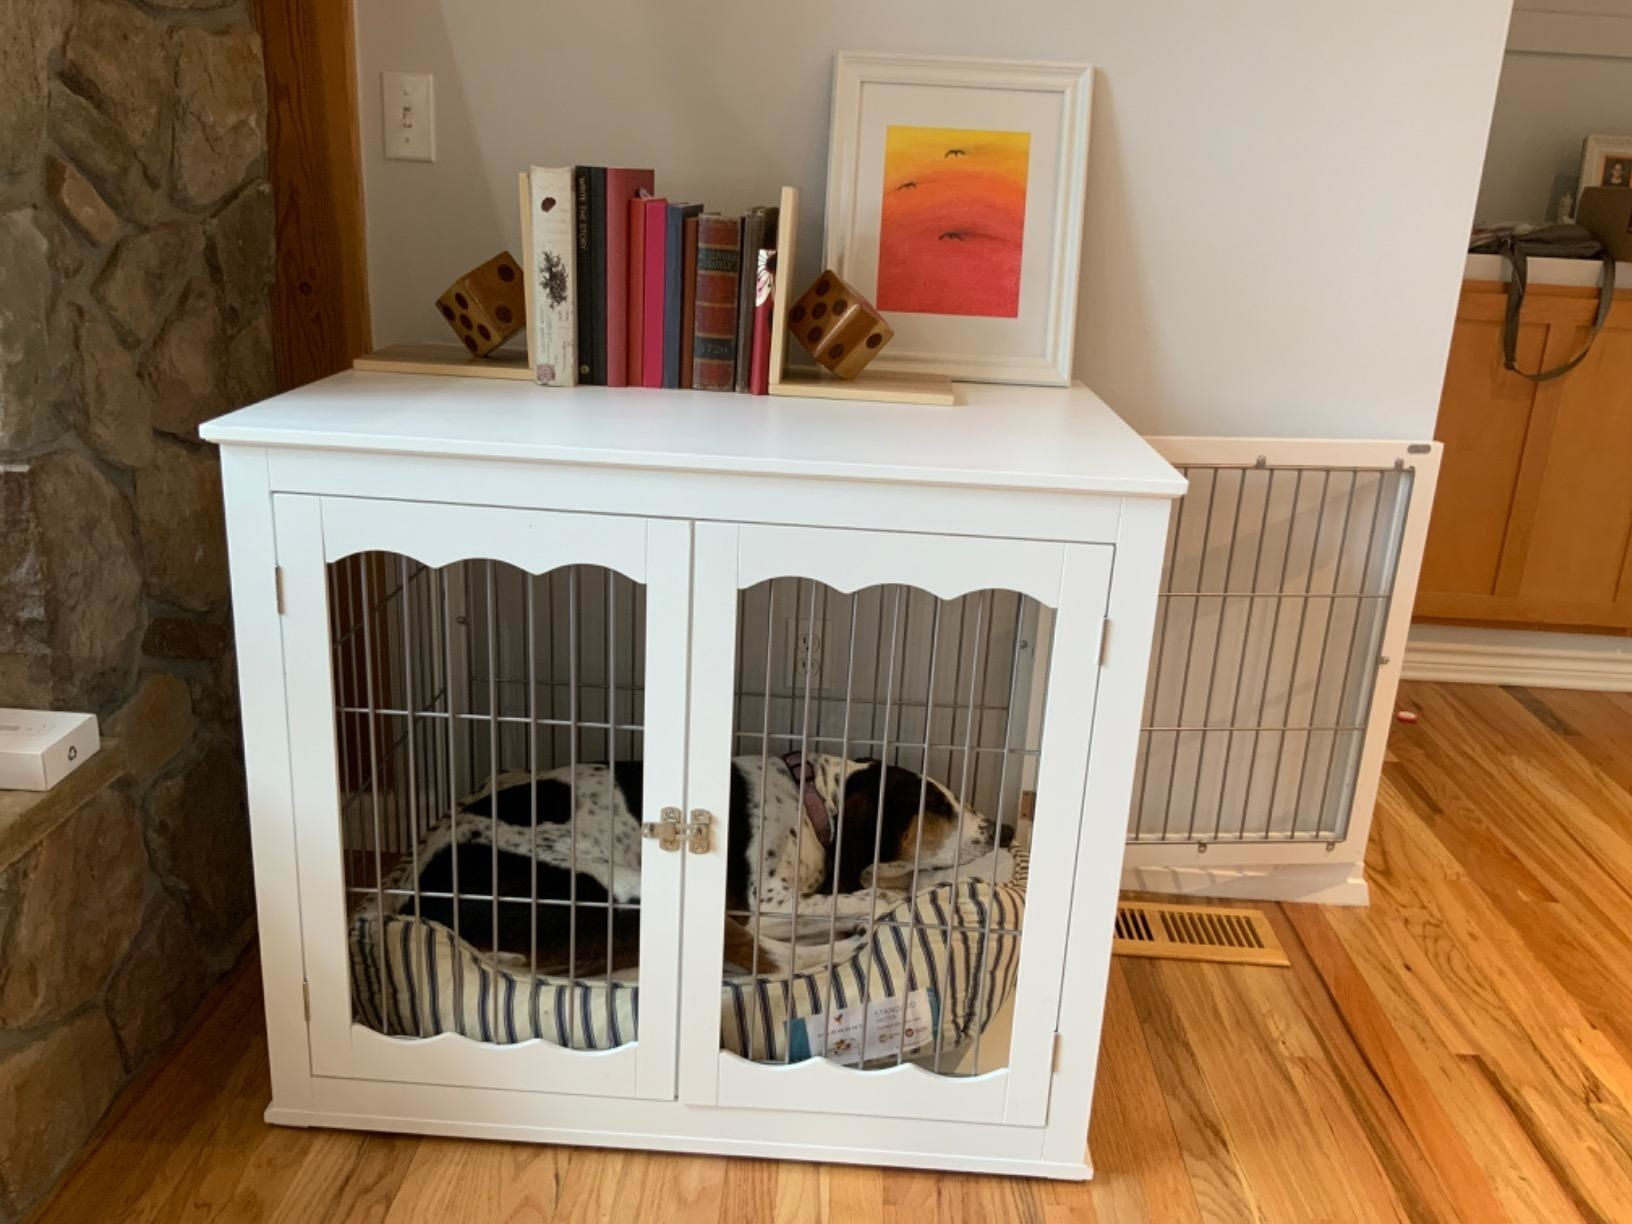 The crate with books placed on top, the side door open, and a dog sleeping on a dog bed inside